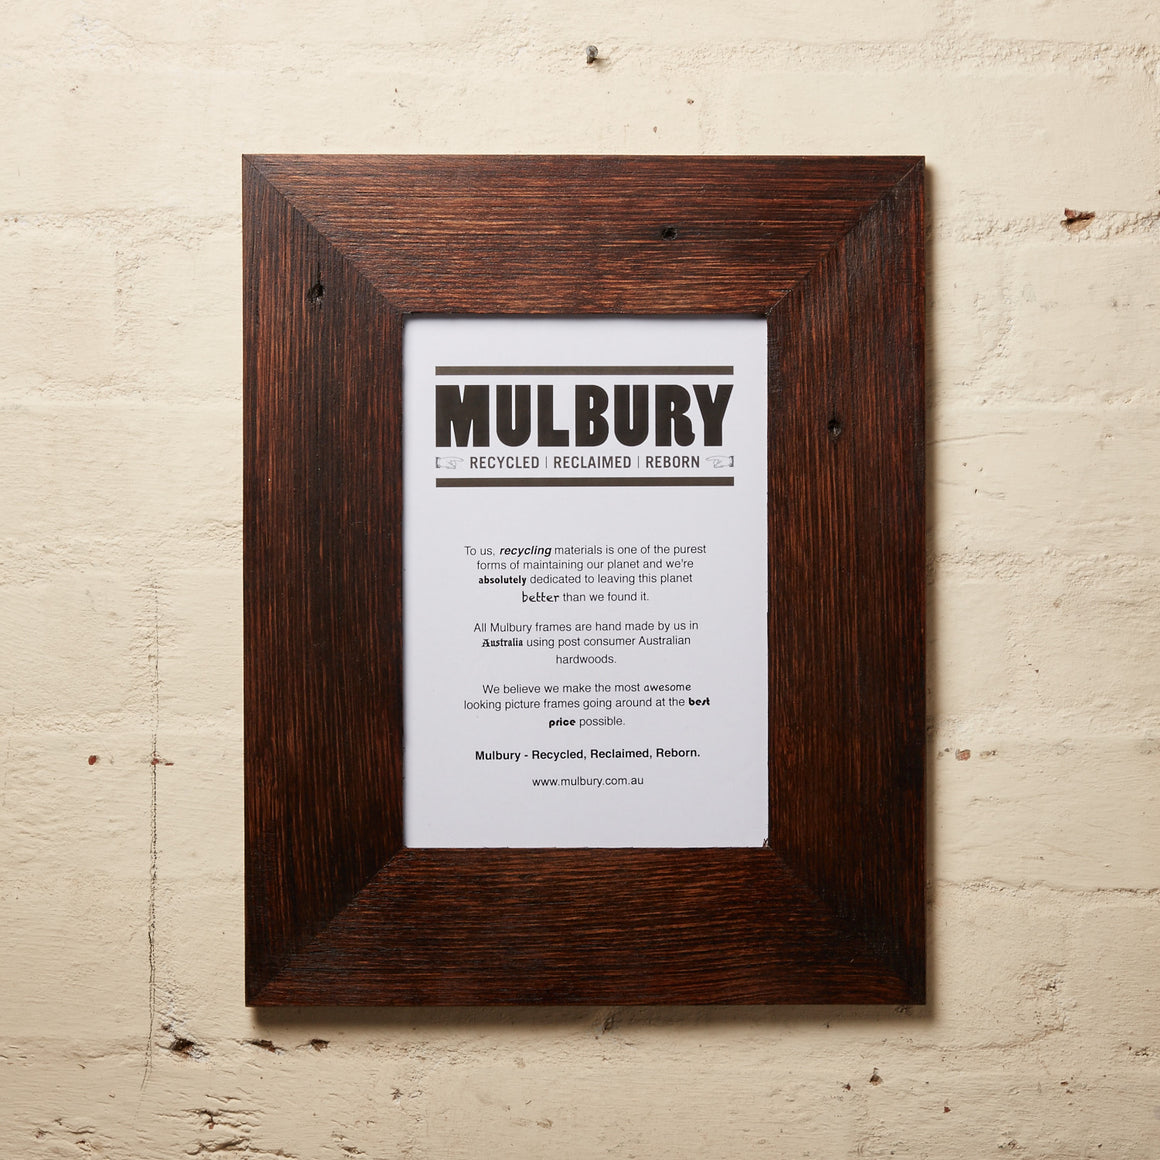 Wide chocolate wax frame made by Mulbury using recycled timber